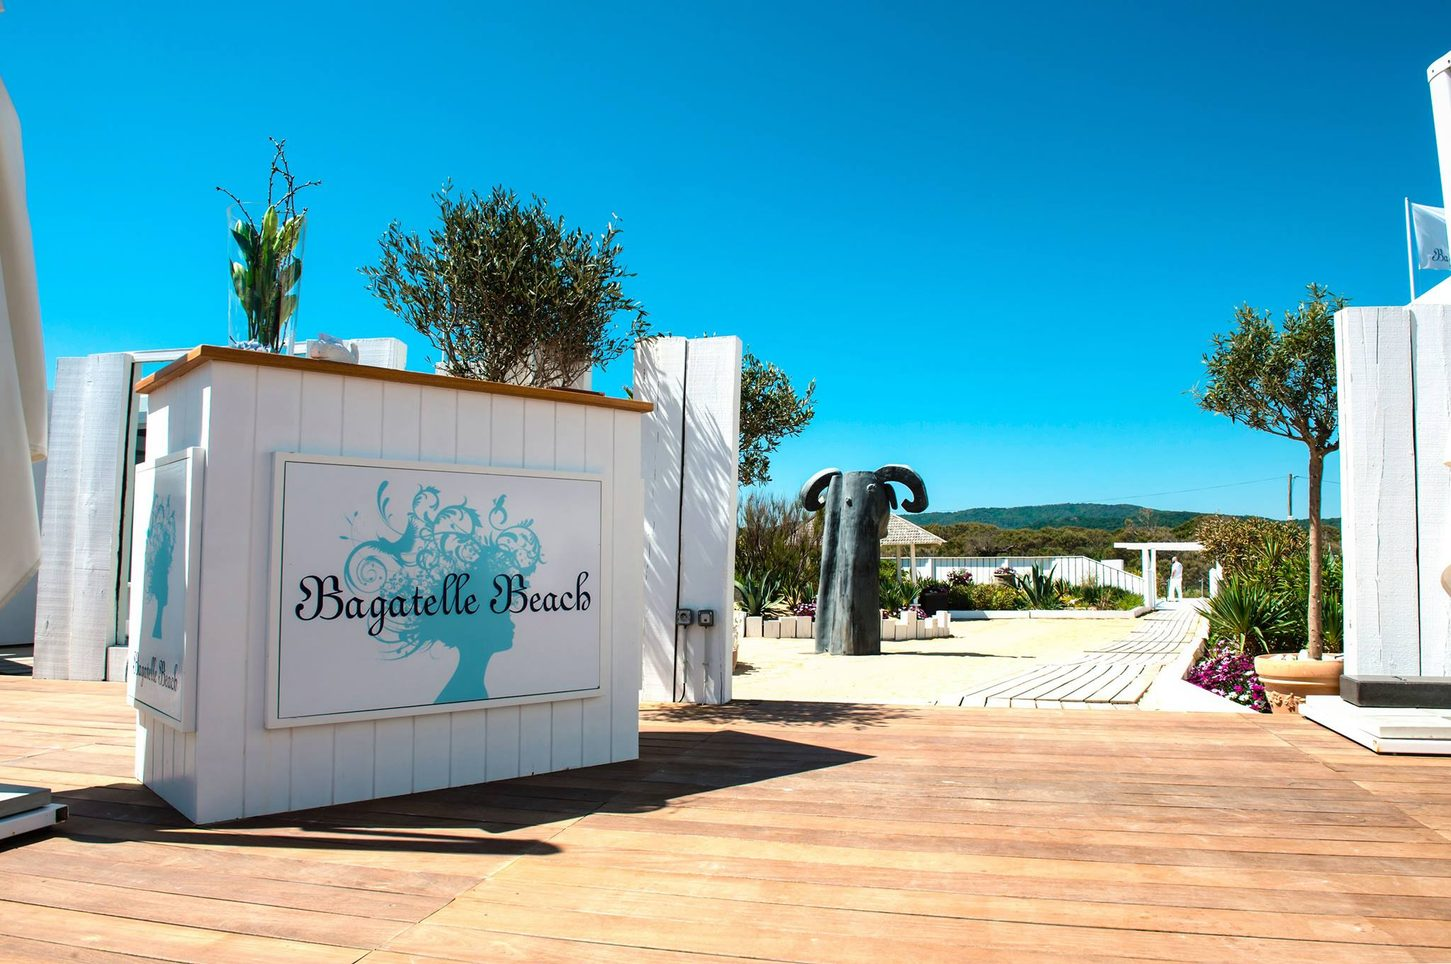 Bagatelle Beach Image 1